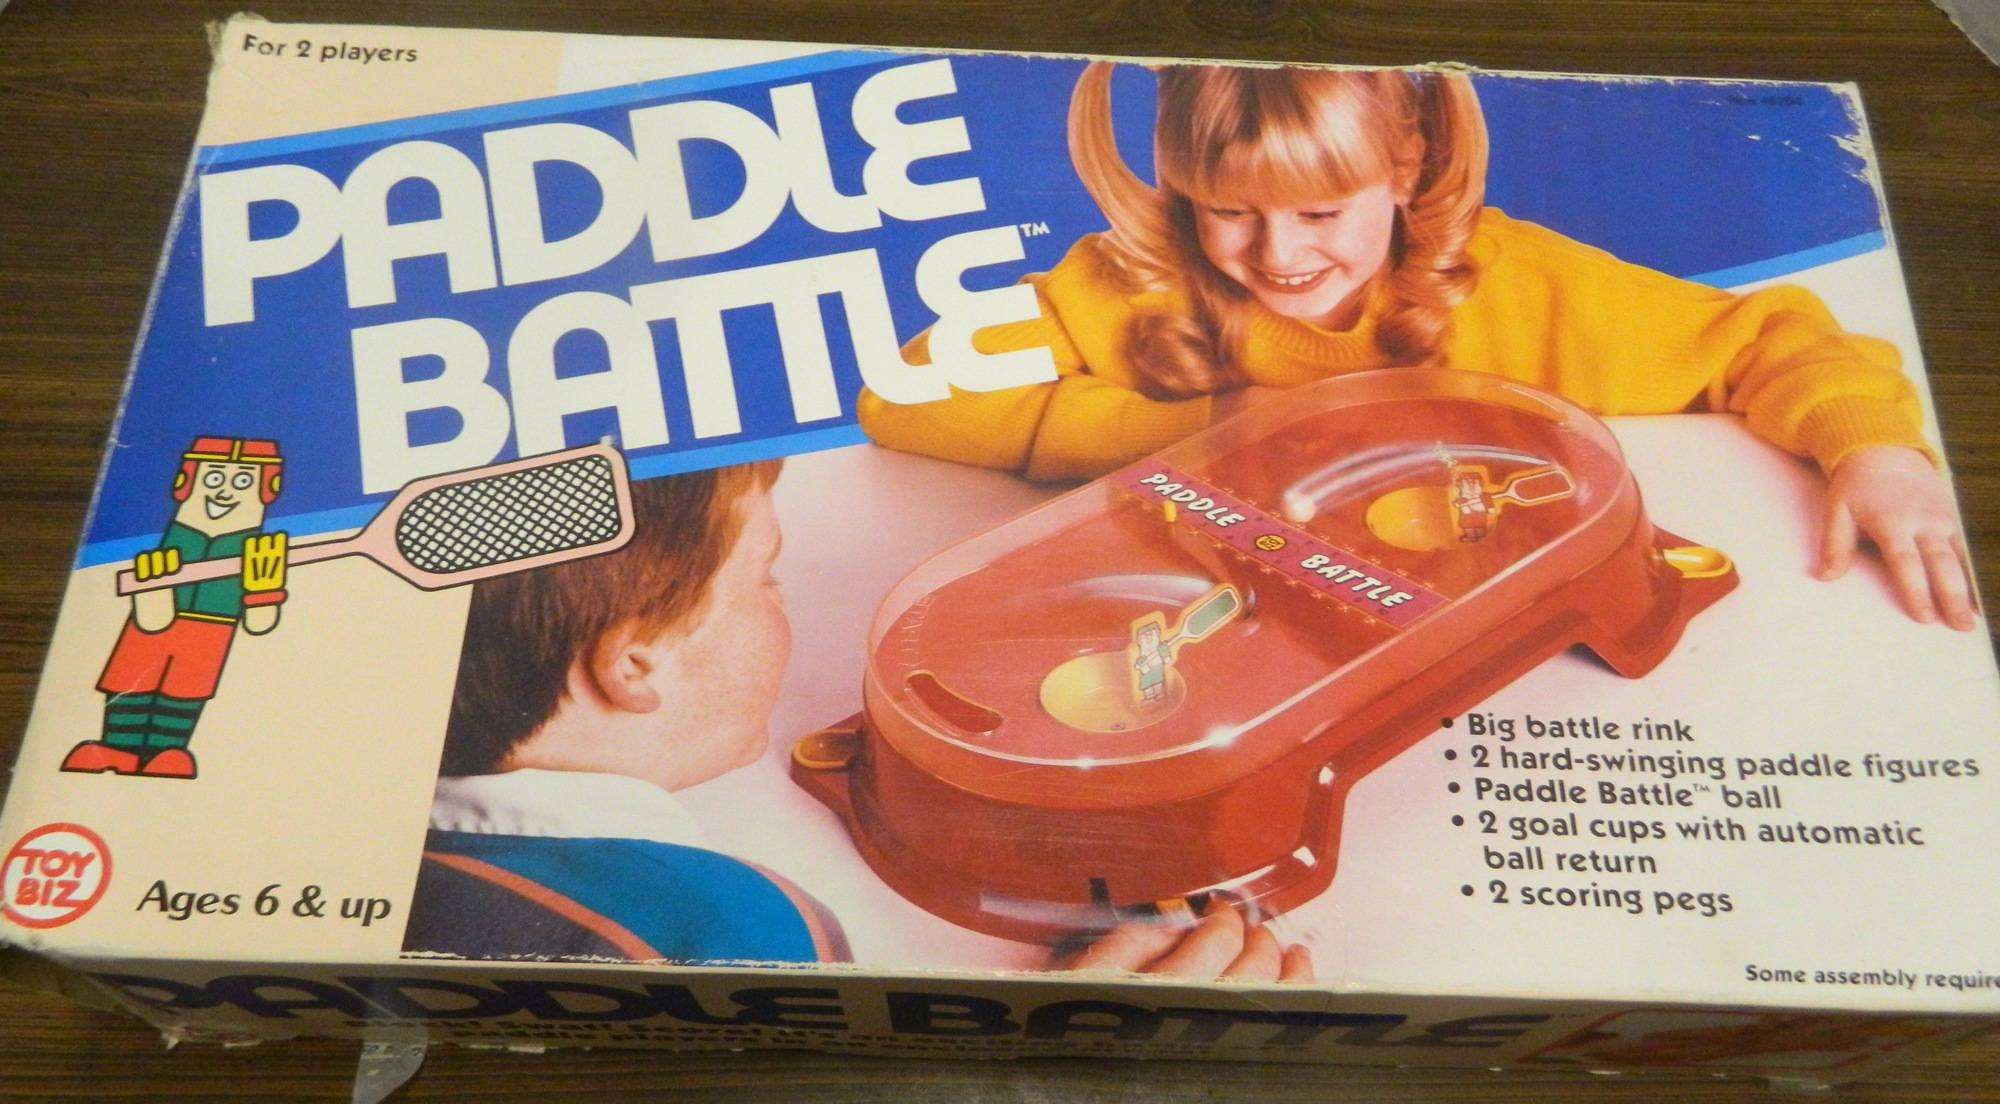 Box for Paddle Battle